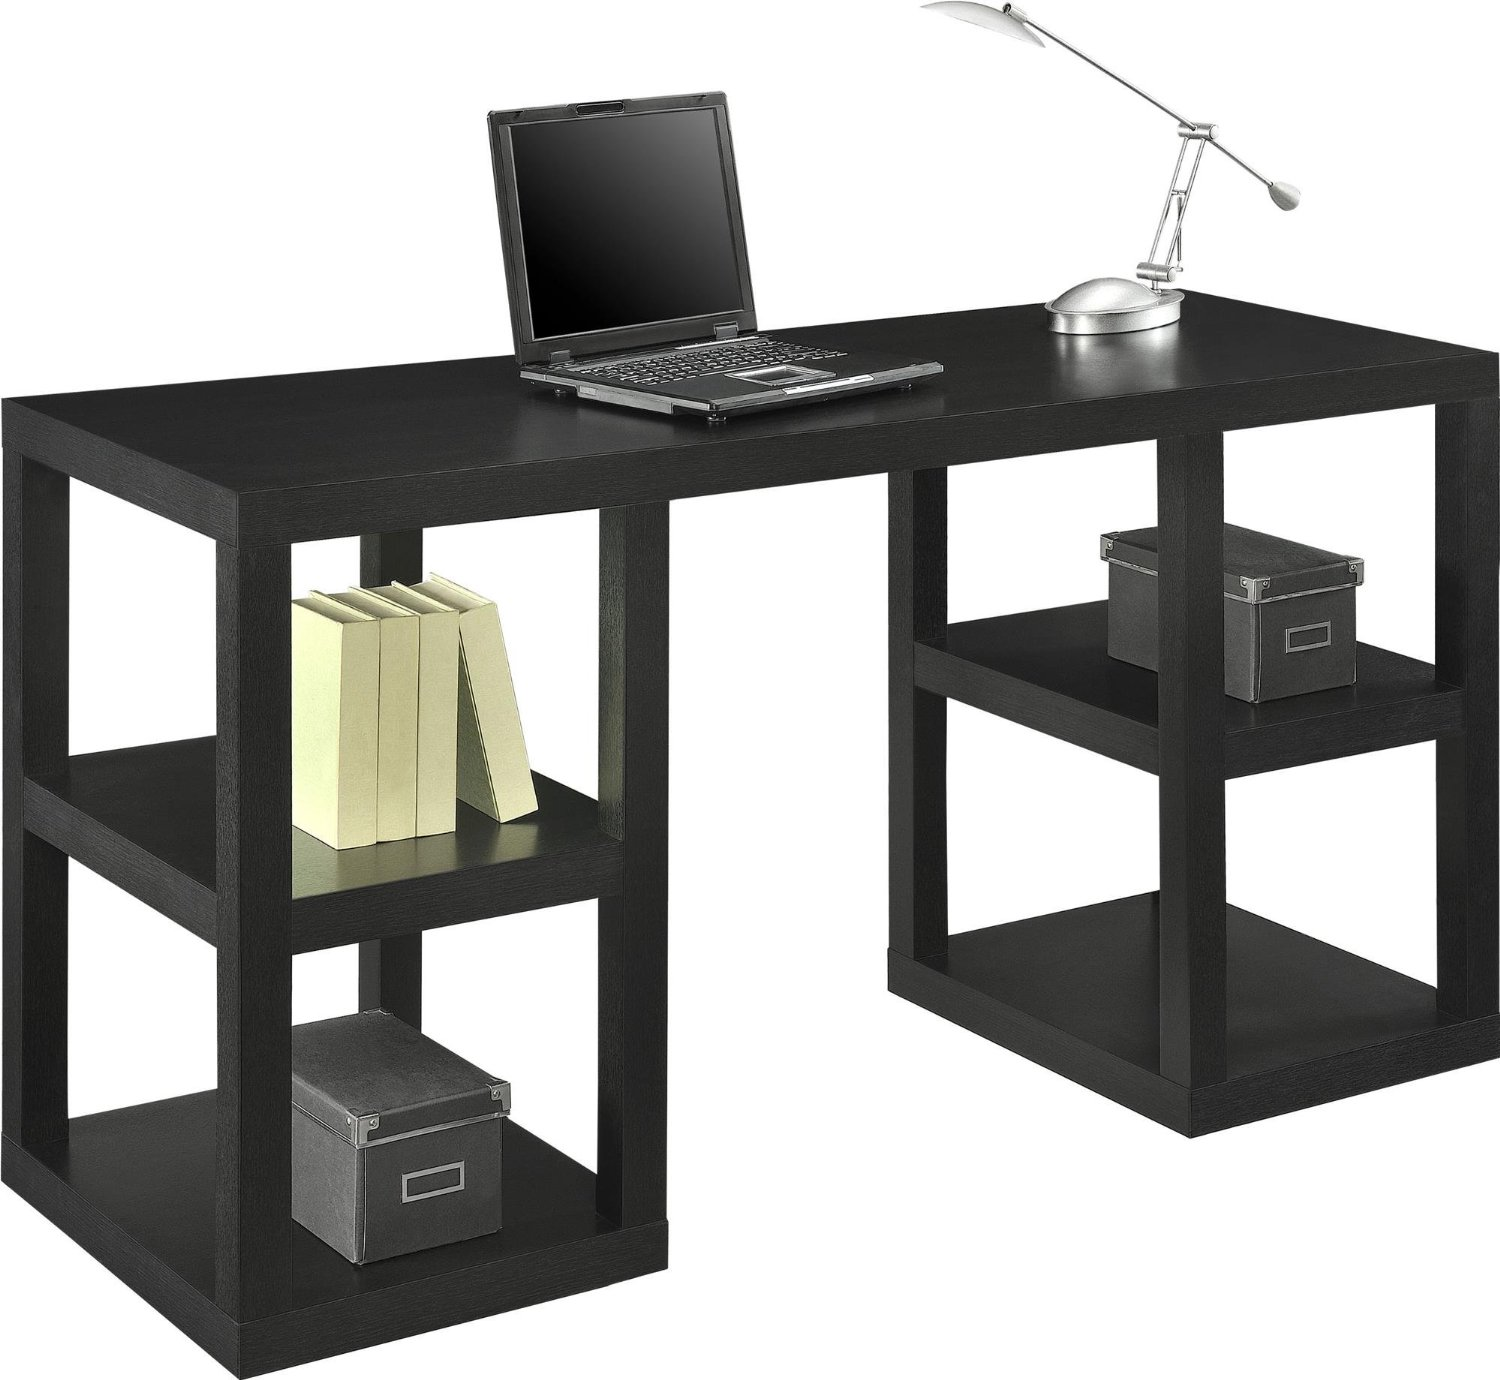 modern tribesigns pc com hutches simple office for desks home style desk computer laptop b study table amazon workstation